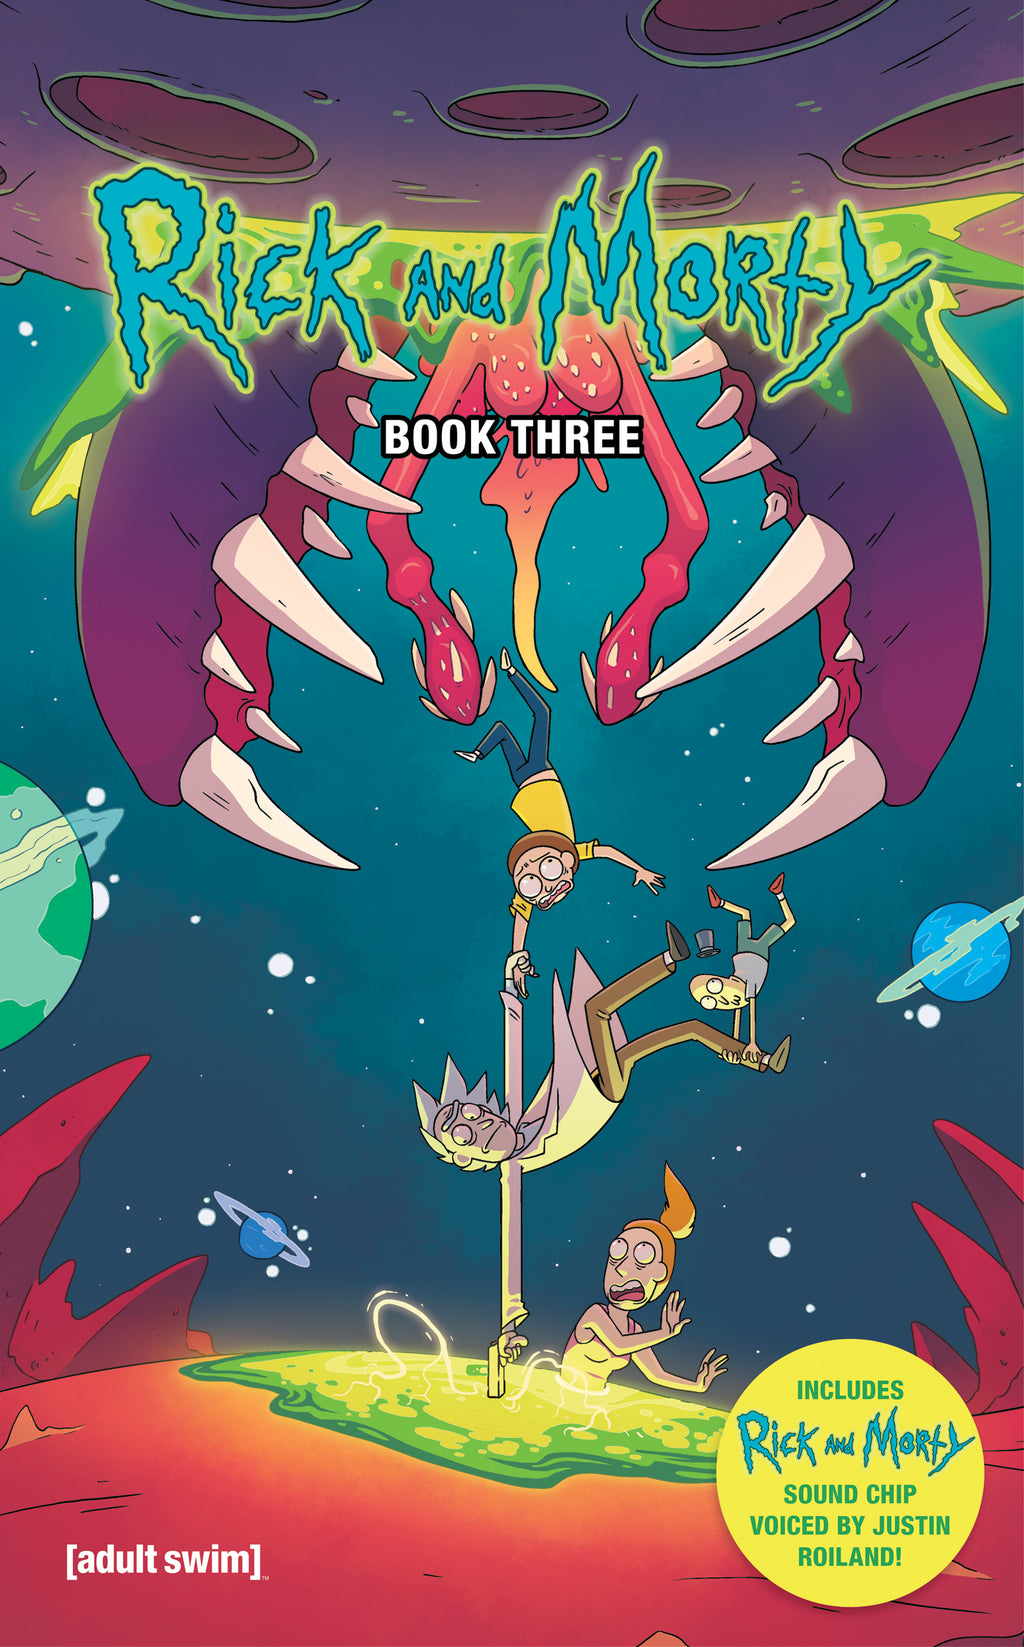 Rick and Morty Hardcover Book 3